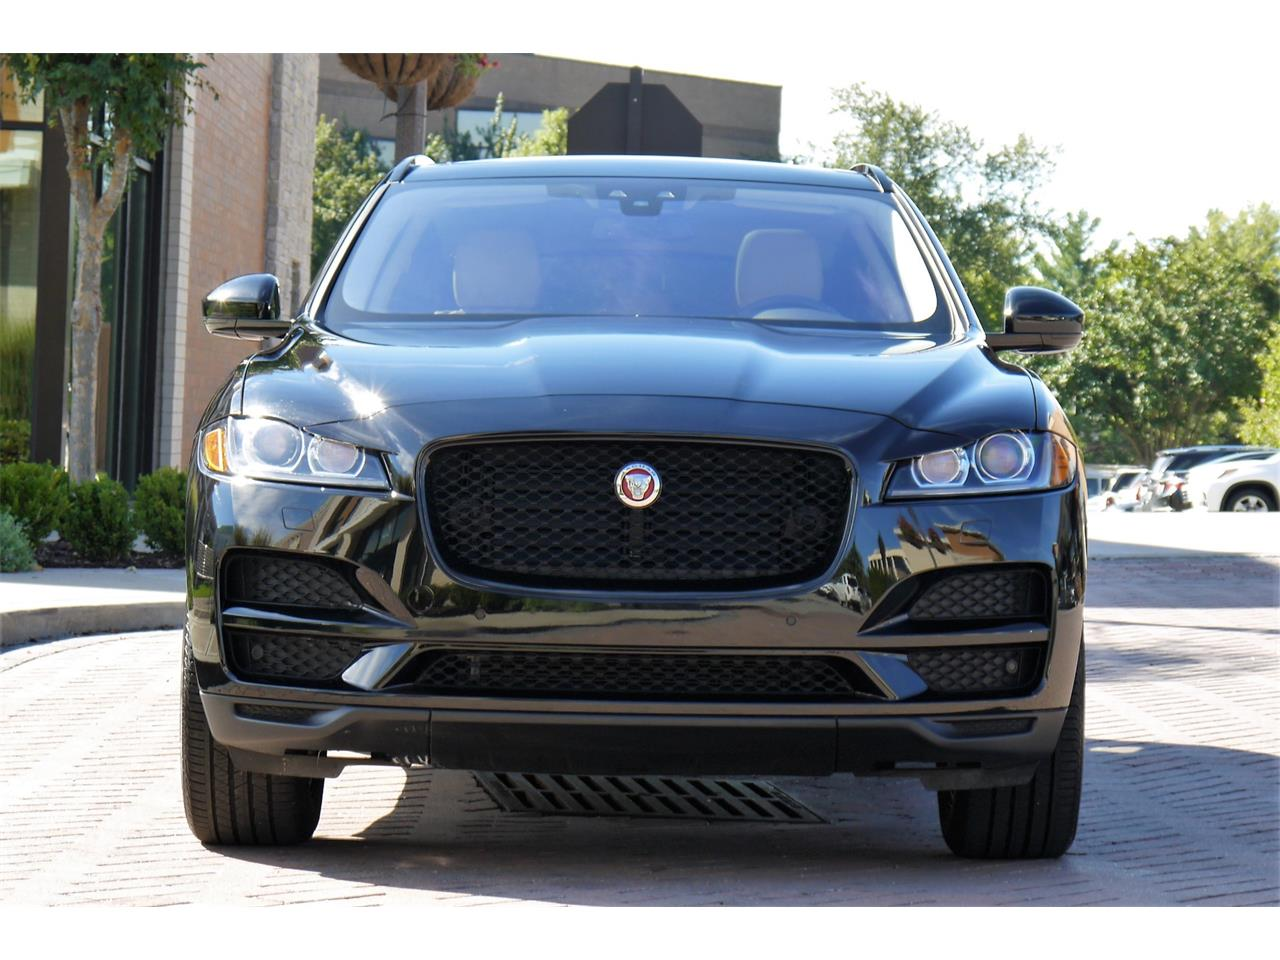 Large Picture of '17 Jaguar F-PACE Offered by Arde Motorcars - OOIB